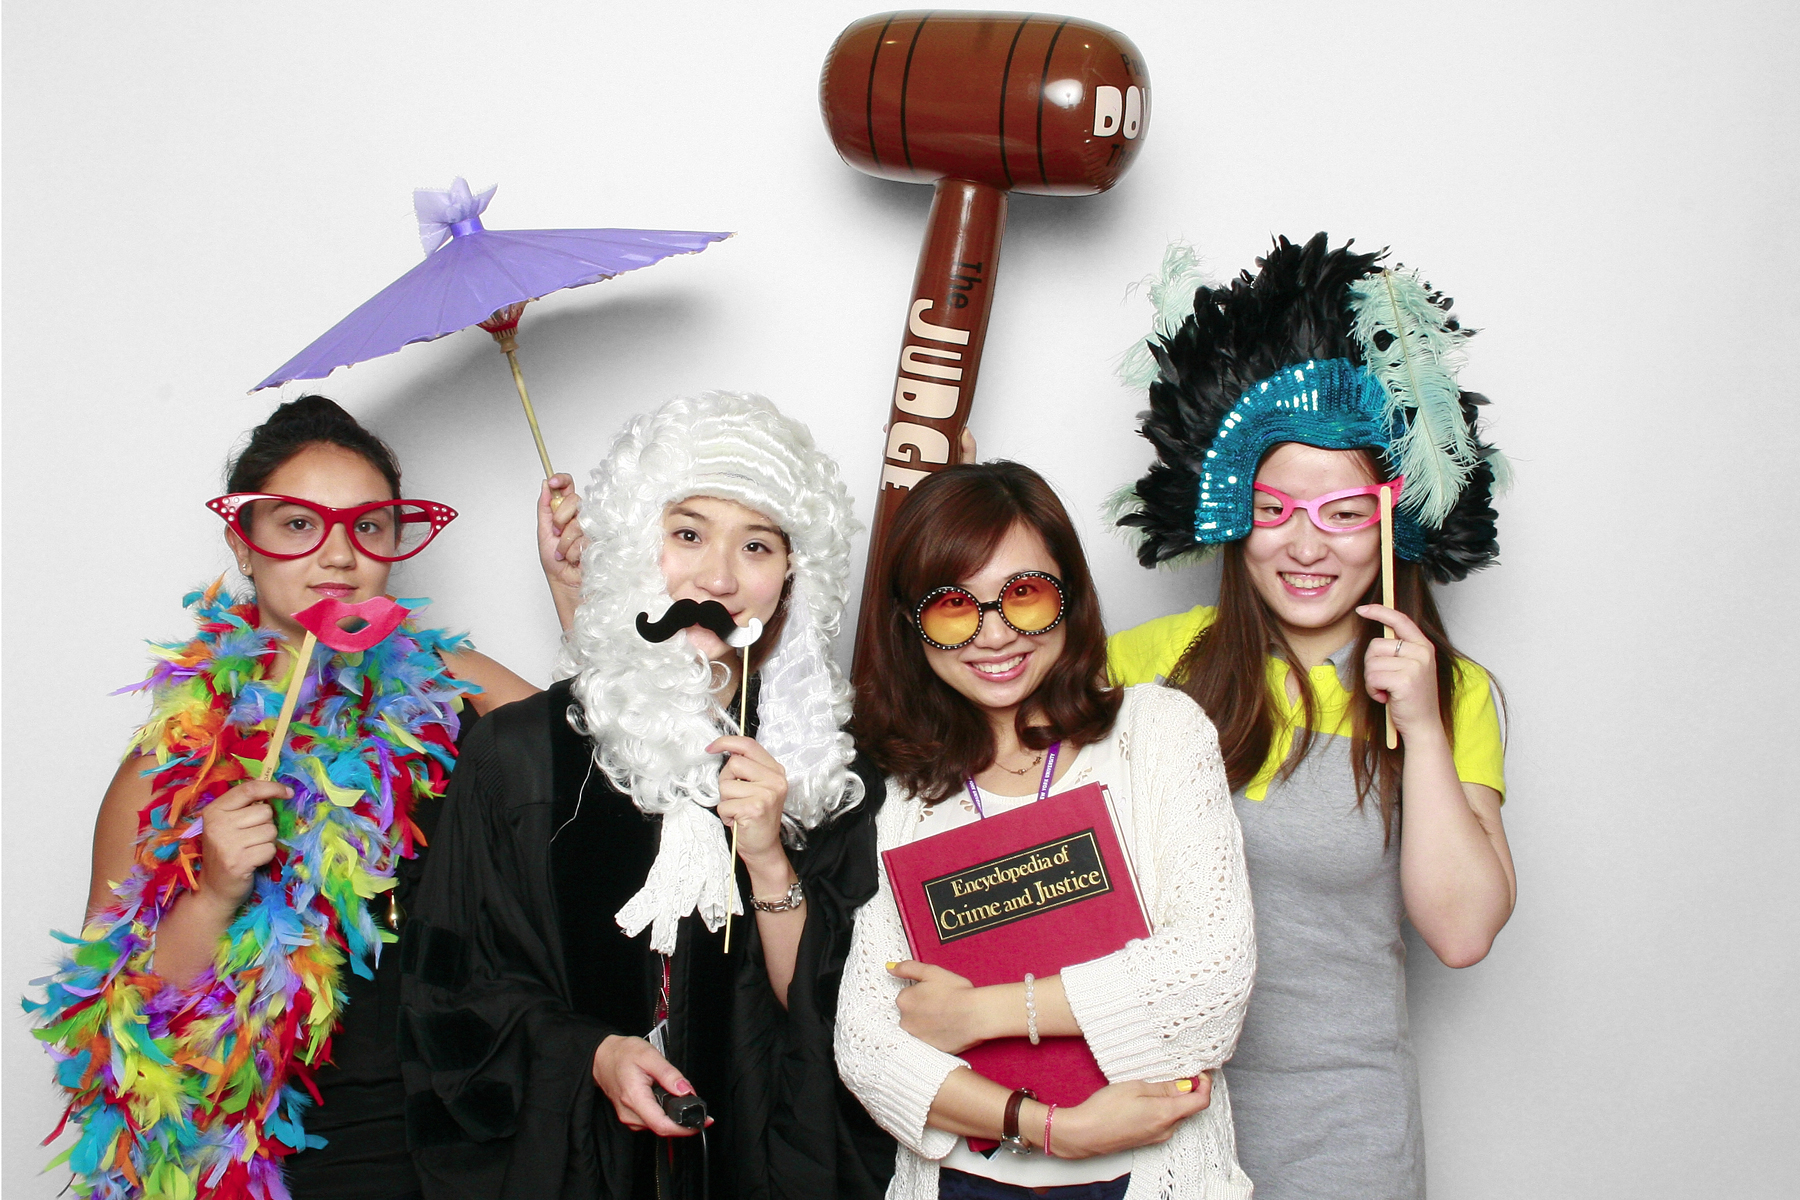 New York Photobooth NYU Law School Orientation students with gavel